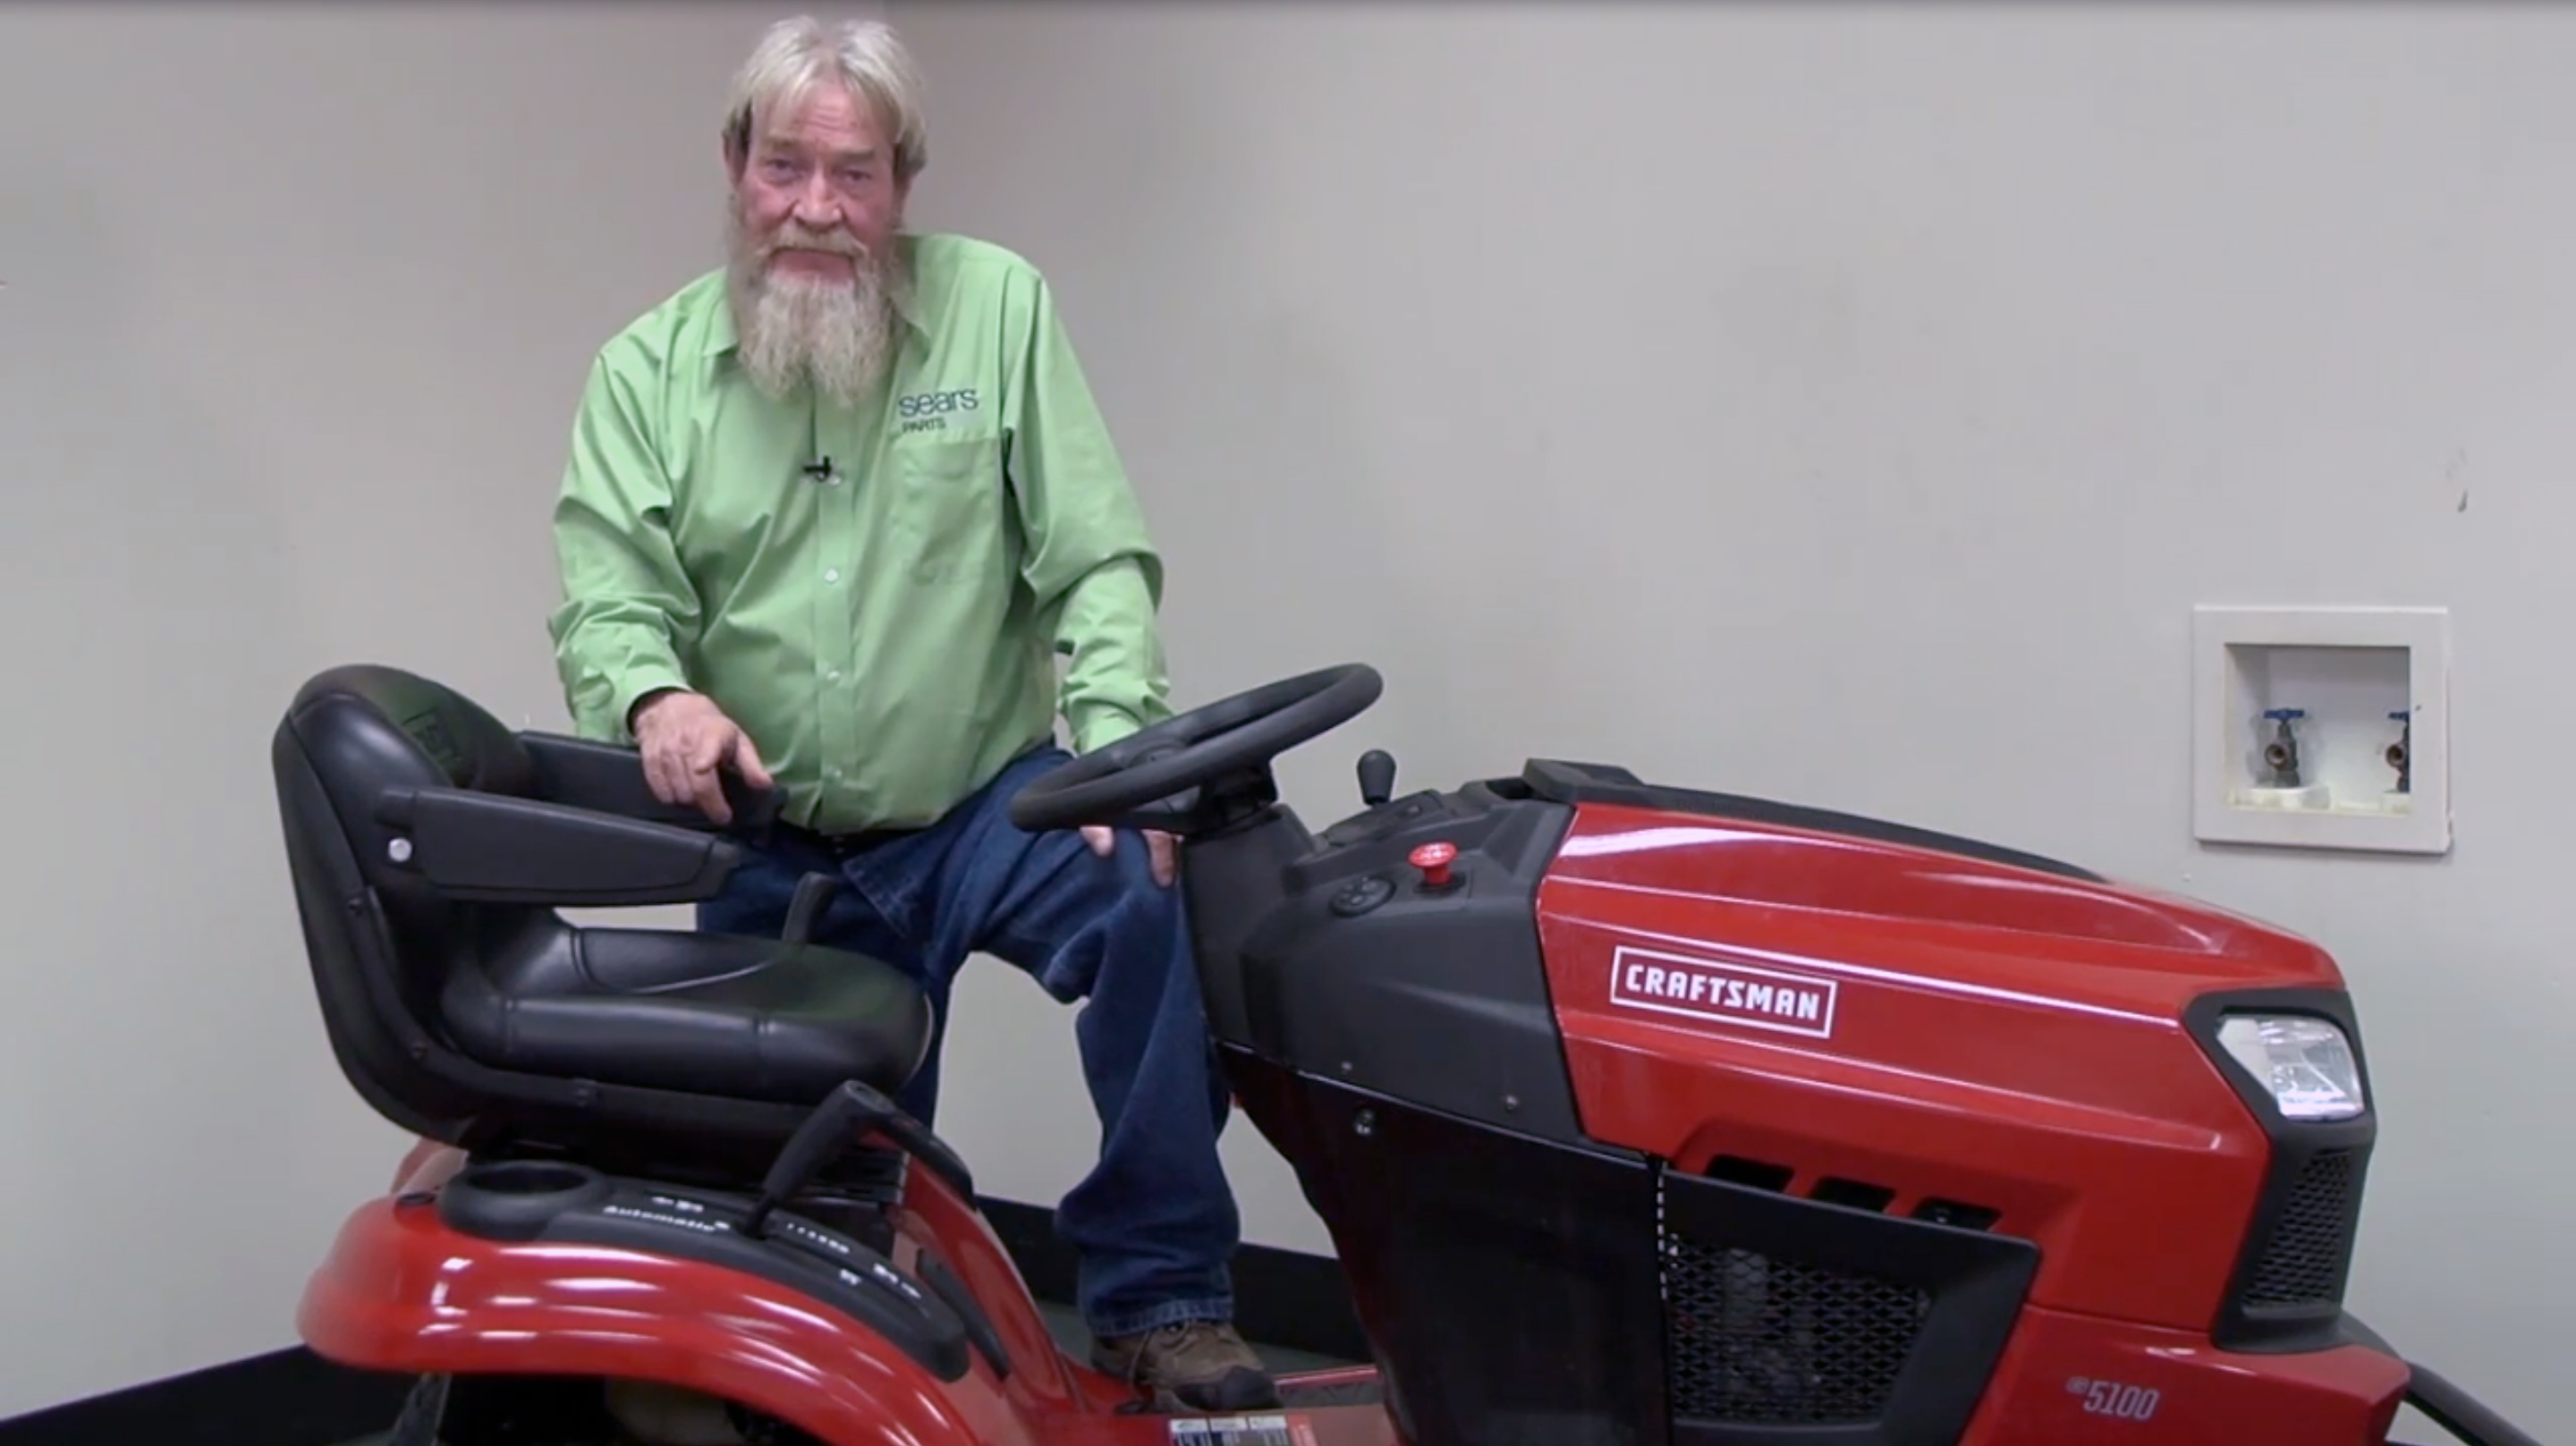 Jump-starting a riding lawn mower battery video | Riding